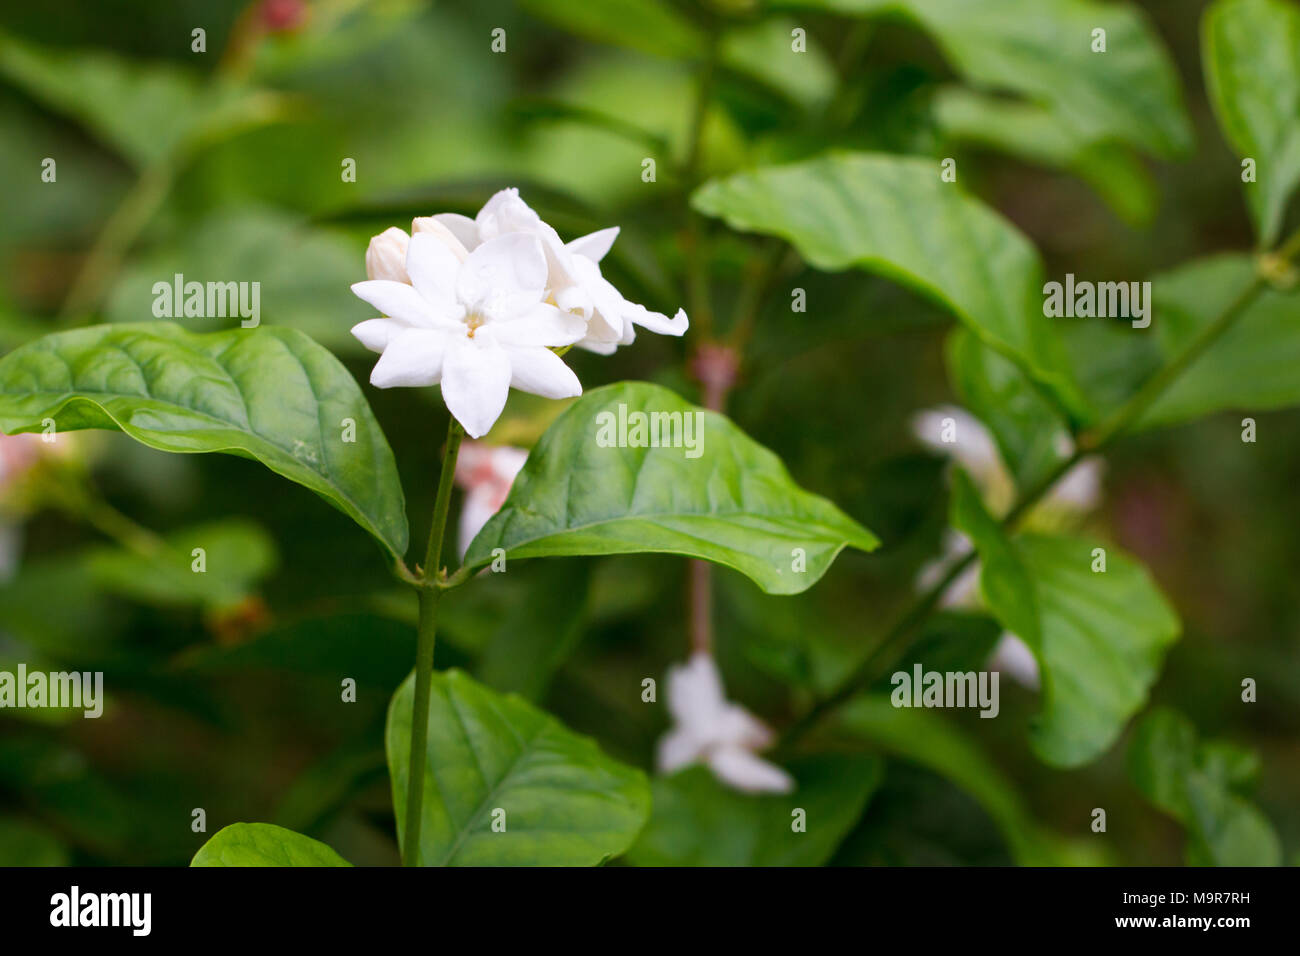 Coral jasmine stock photos coral jasmine stock images alamy jasmine isolate on background in spring summerfront view from the top technical cost izmirmasajfo